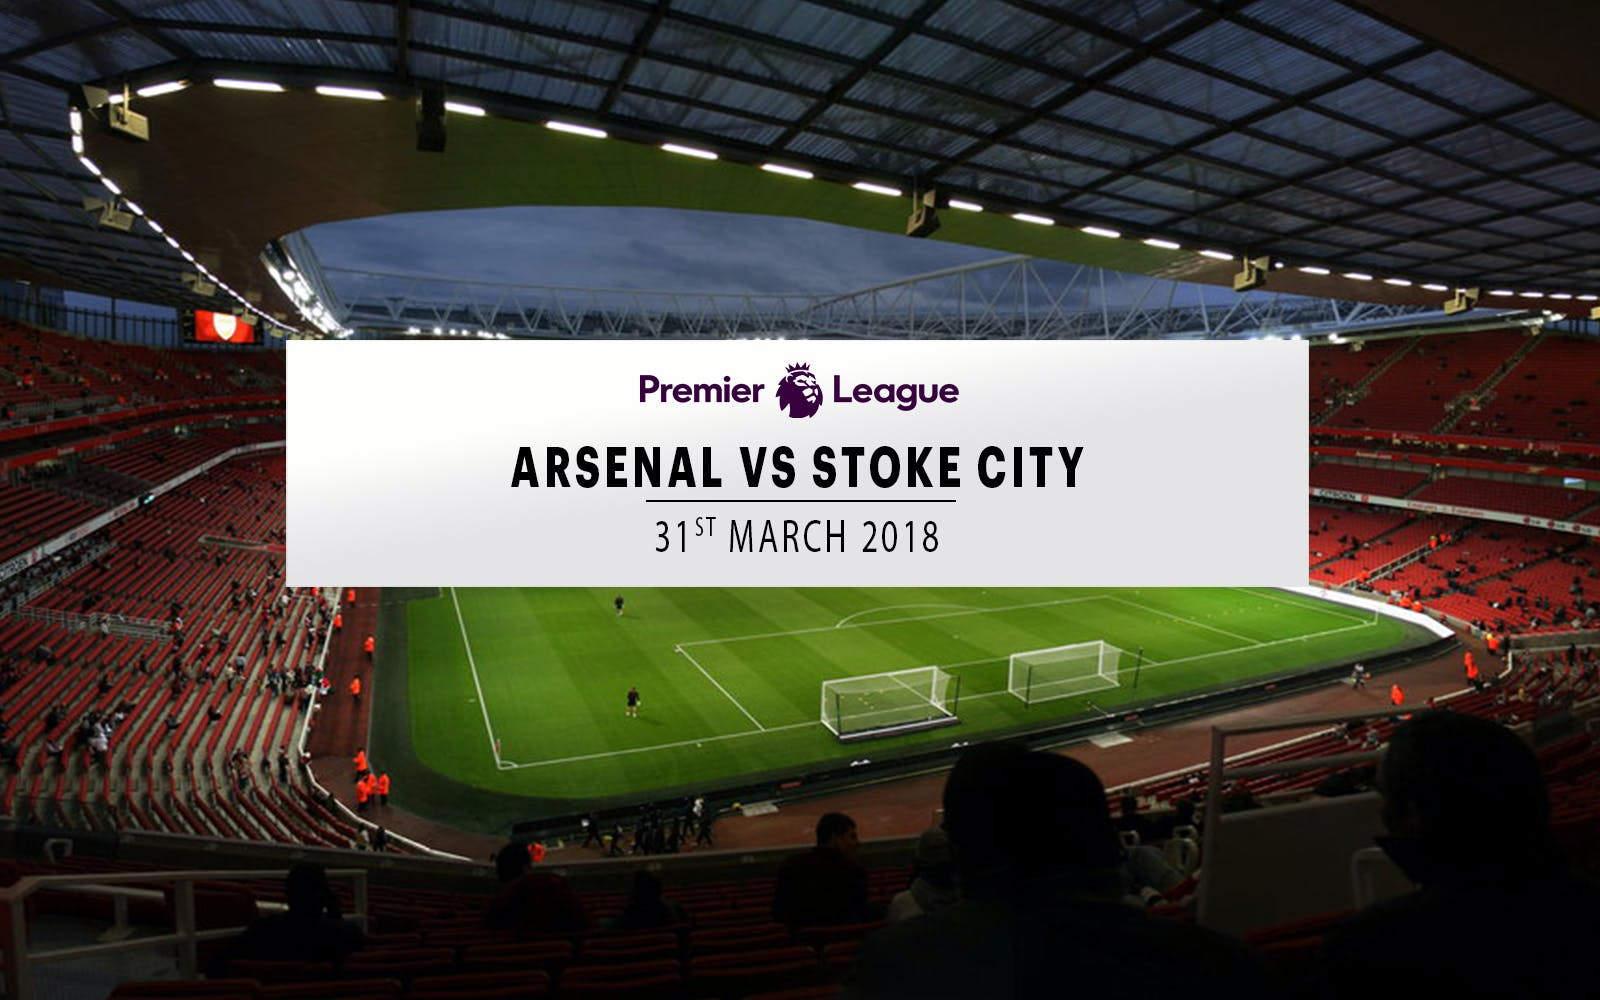 arsenal vs stoke city - 31st march 2018-1